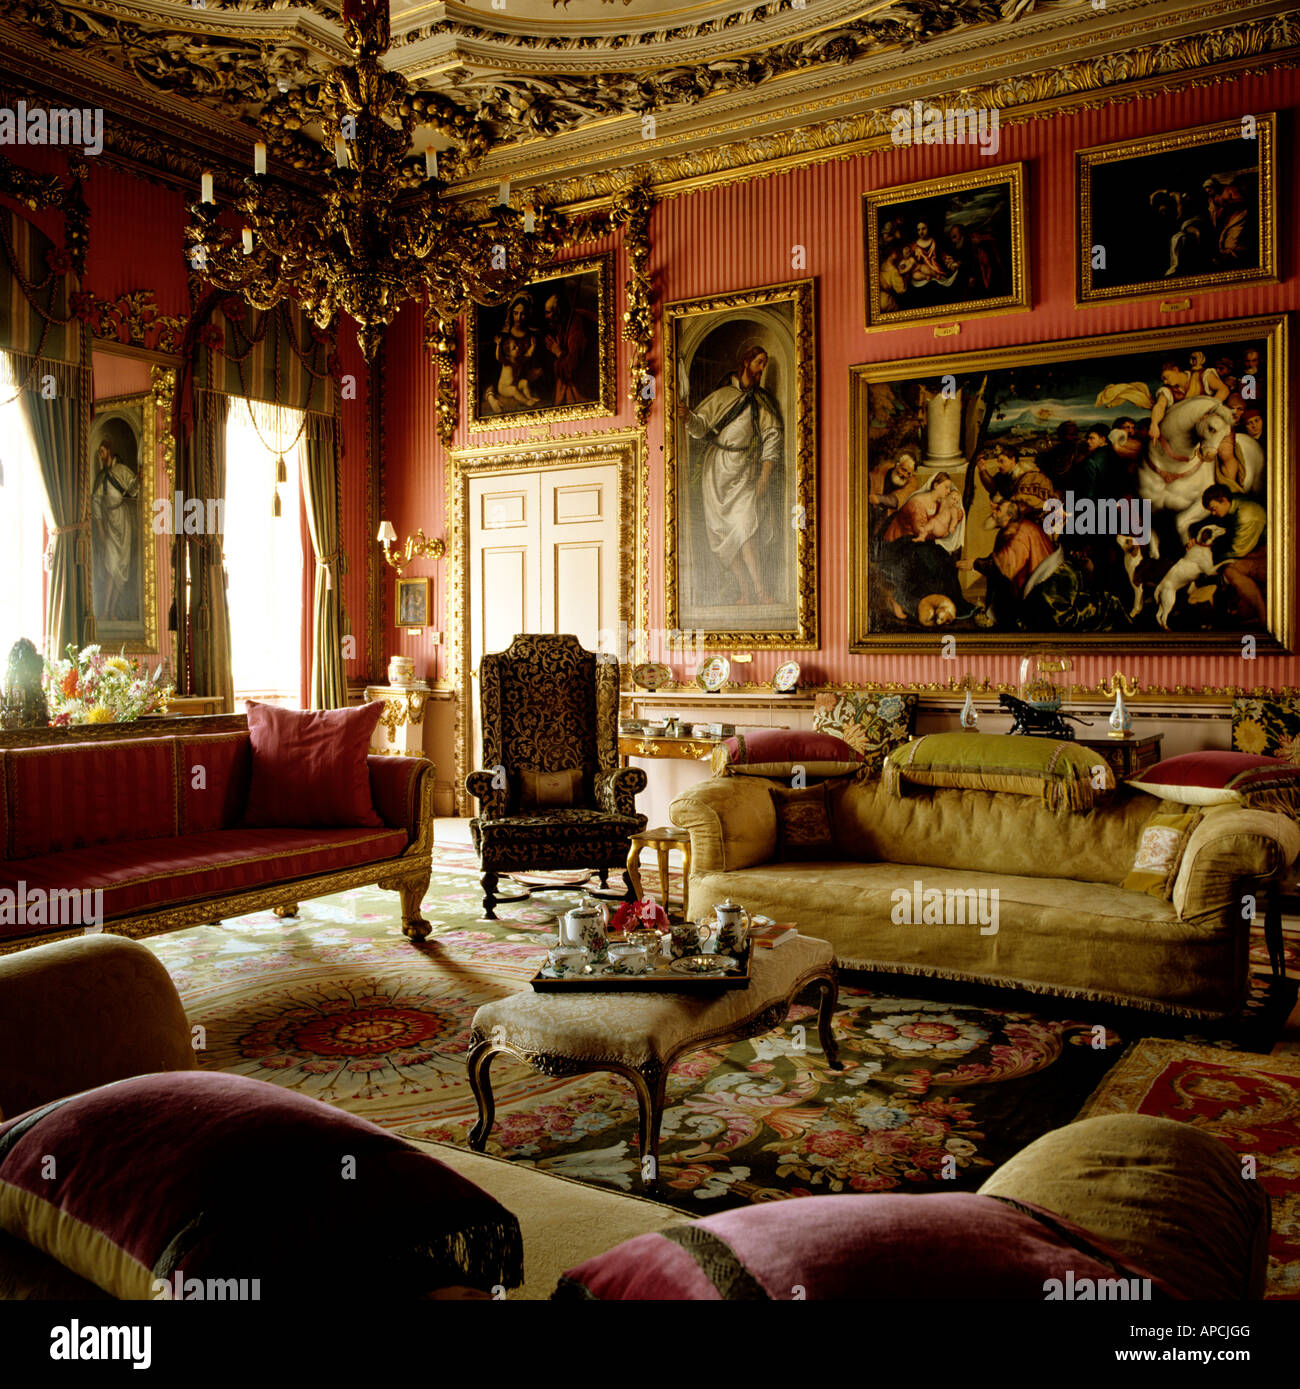 Home Interior Pictures: Burghley House Interior Stock Photos & Burghley House